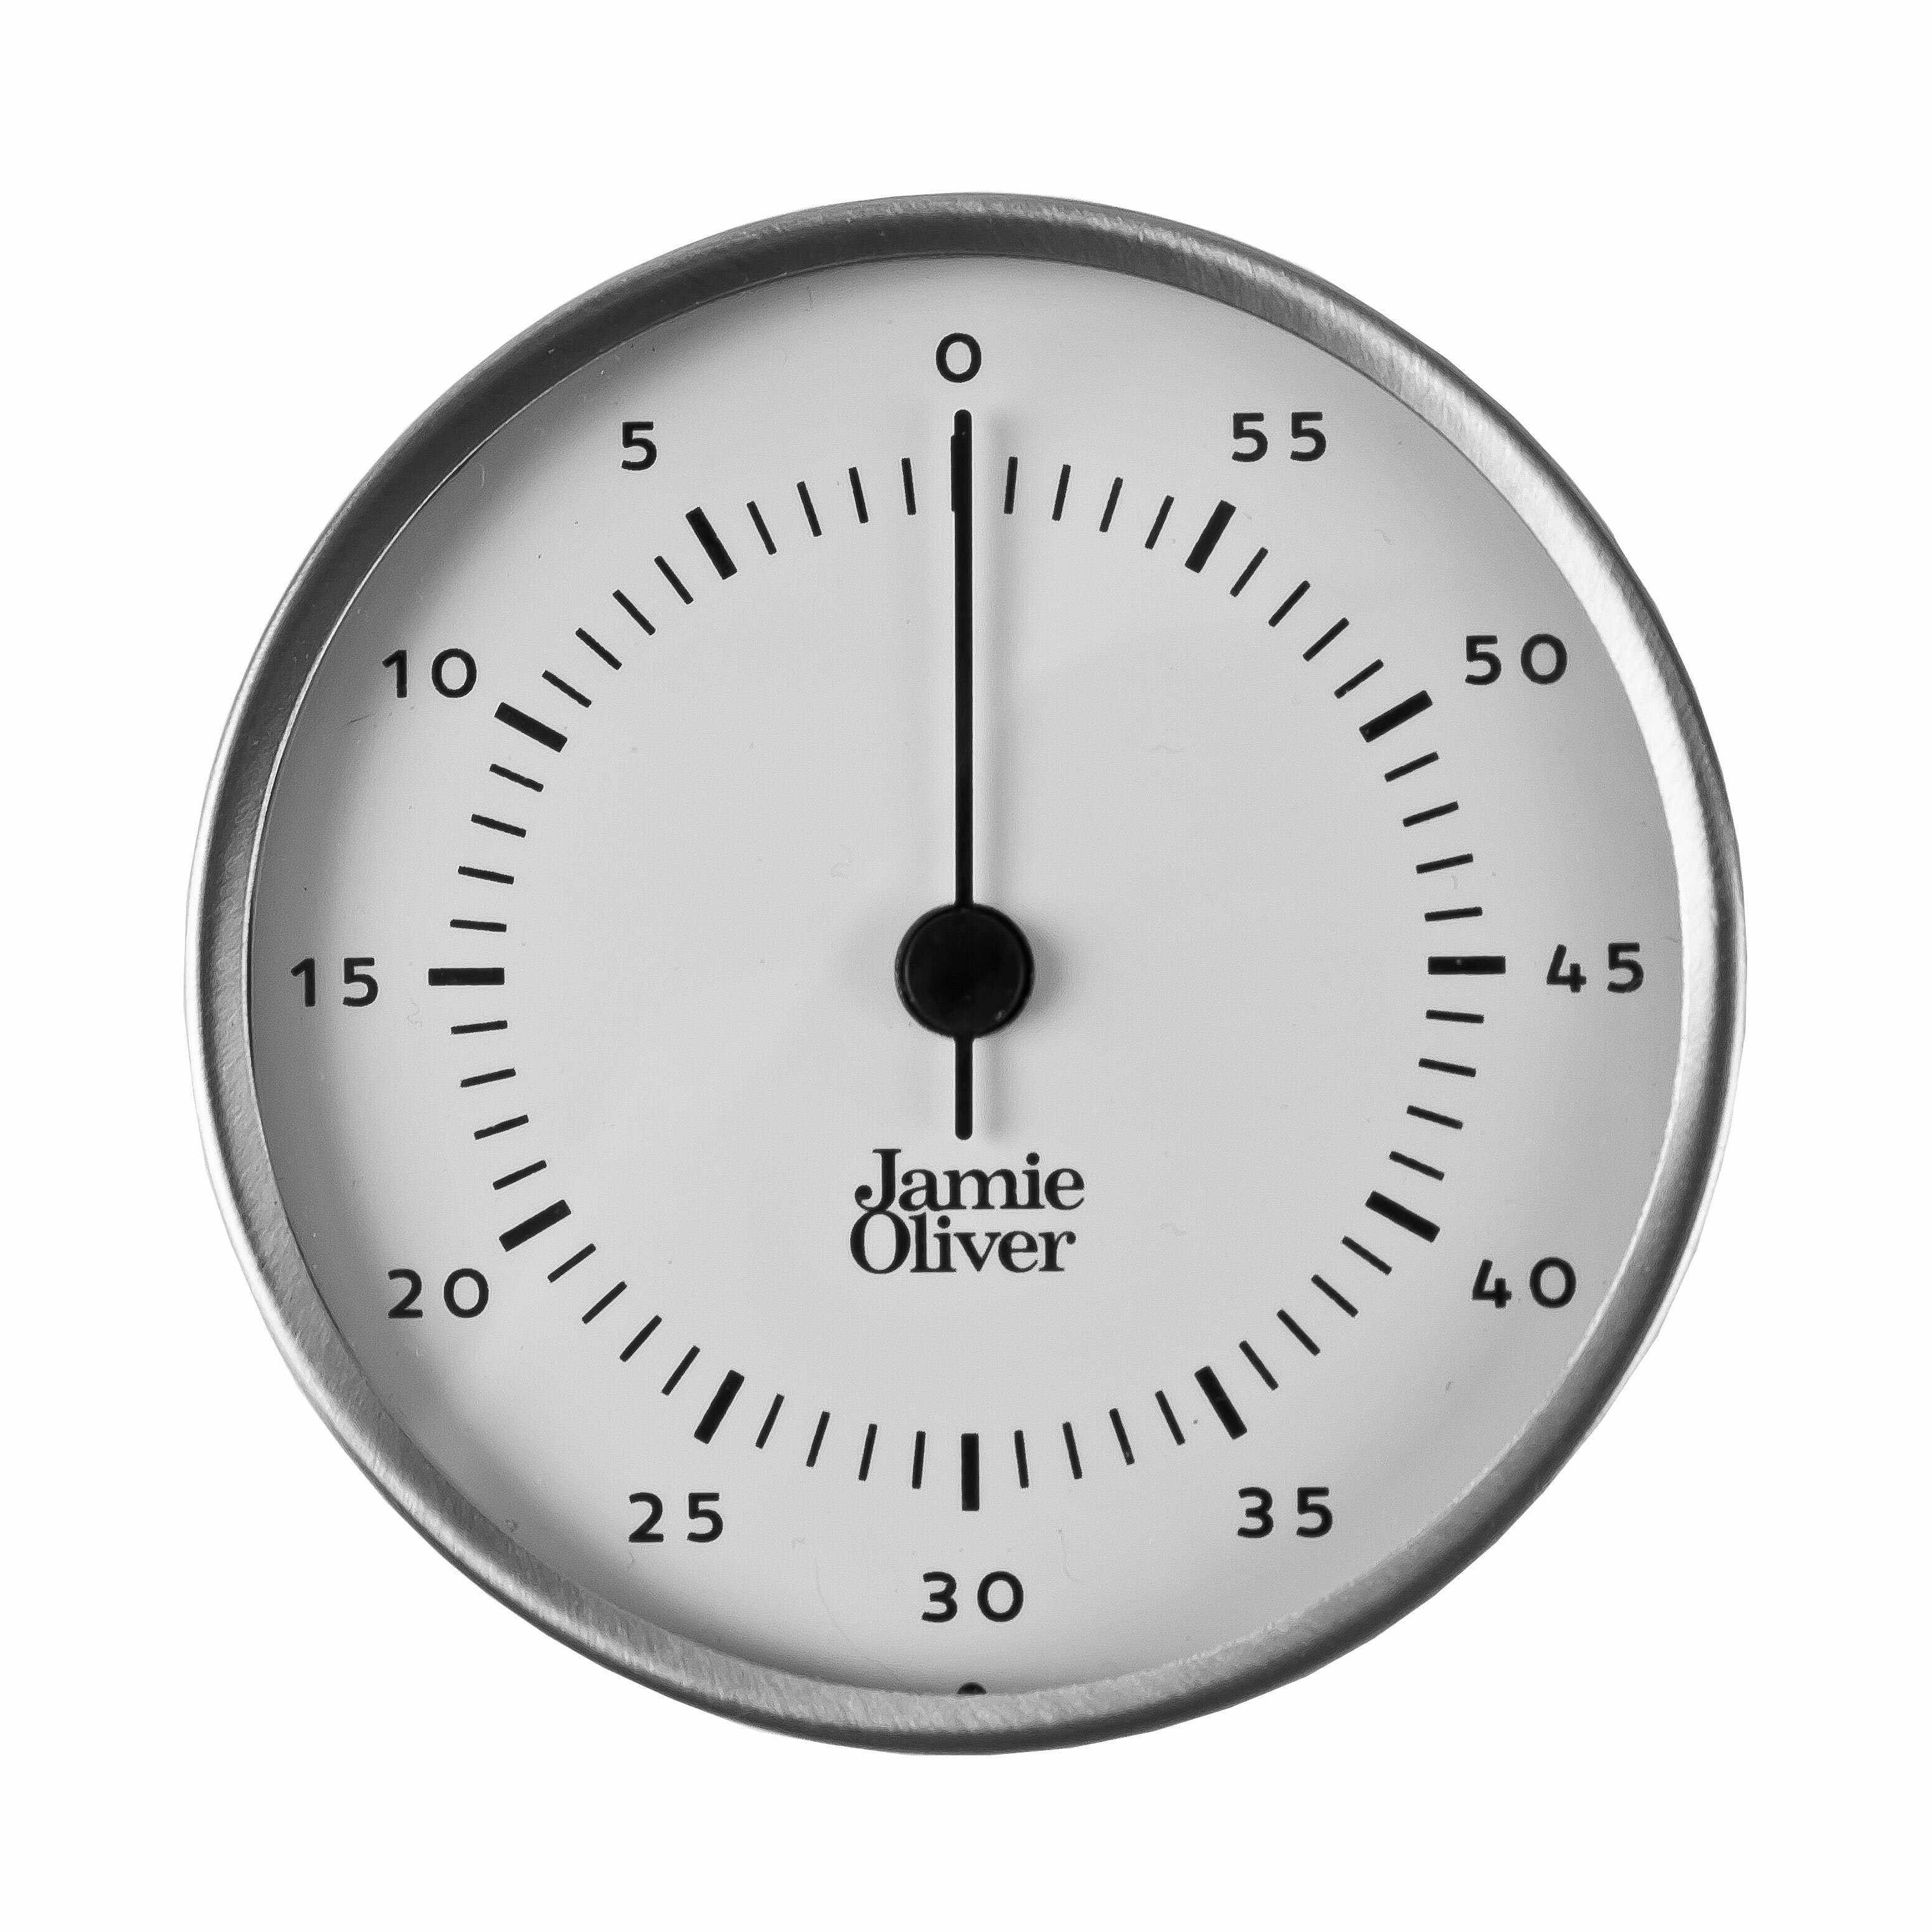 Jamie Oliver Stainless Steel Magnetic Kitchen Timer with Manual Wind ...